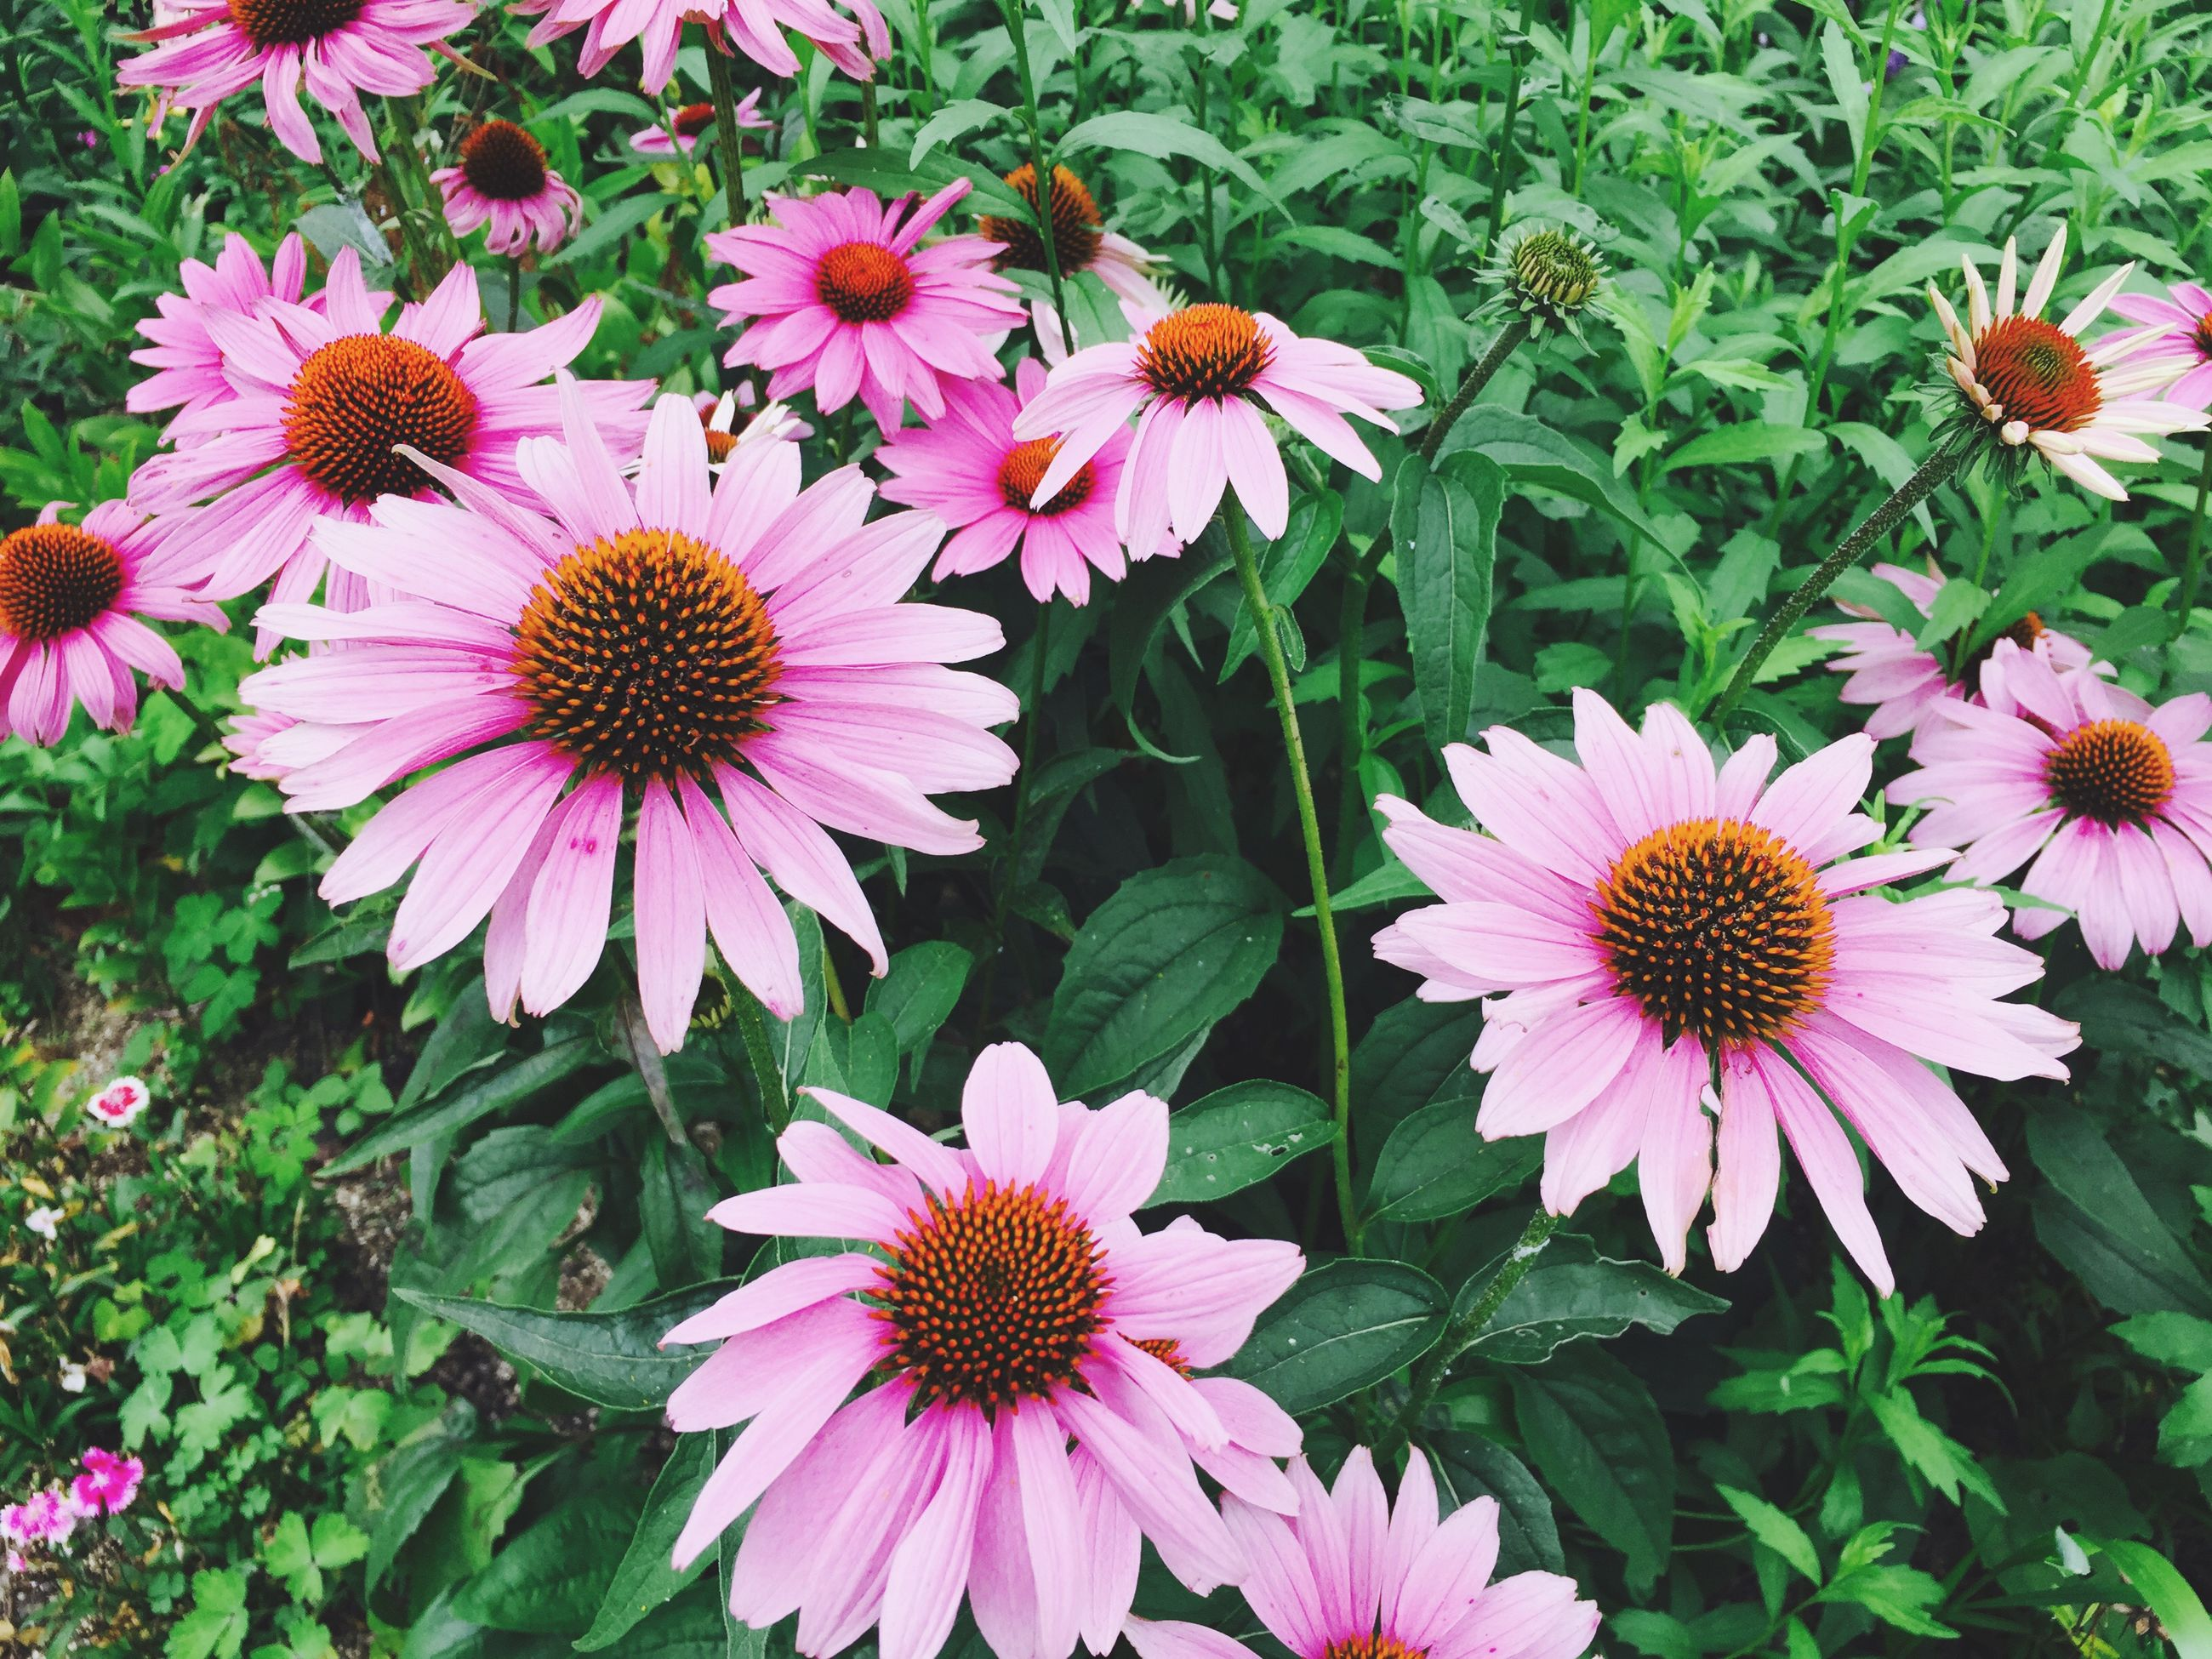 flower, freshness, petal, fragility, flower head, growth, beauty in nature, blooming, pollen, nature, plant, pink color, high angle view, in bloom, leaf, close-up, daisy, outdoors, day, focus on foreground